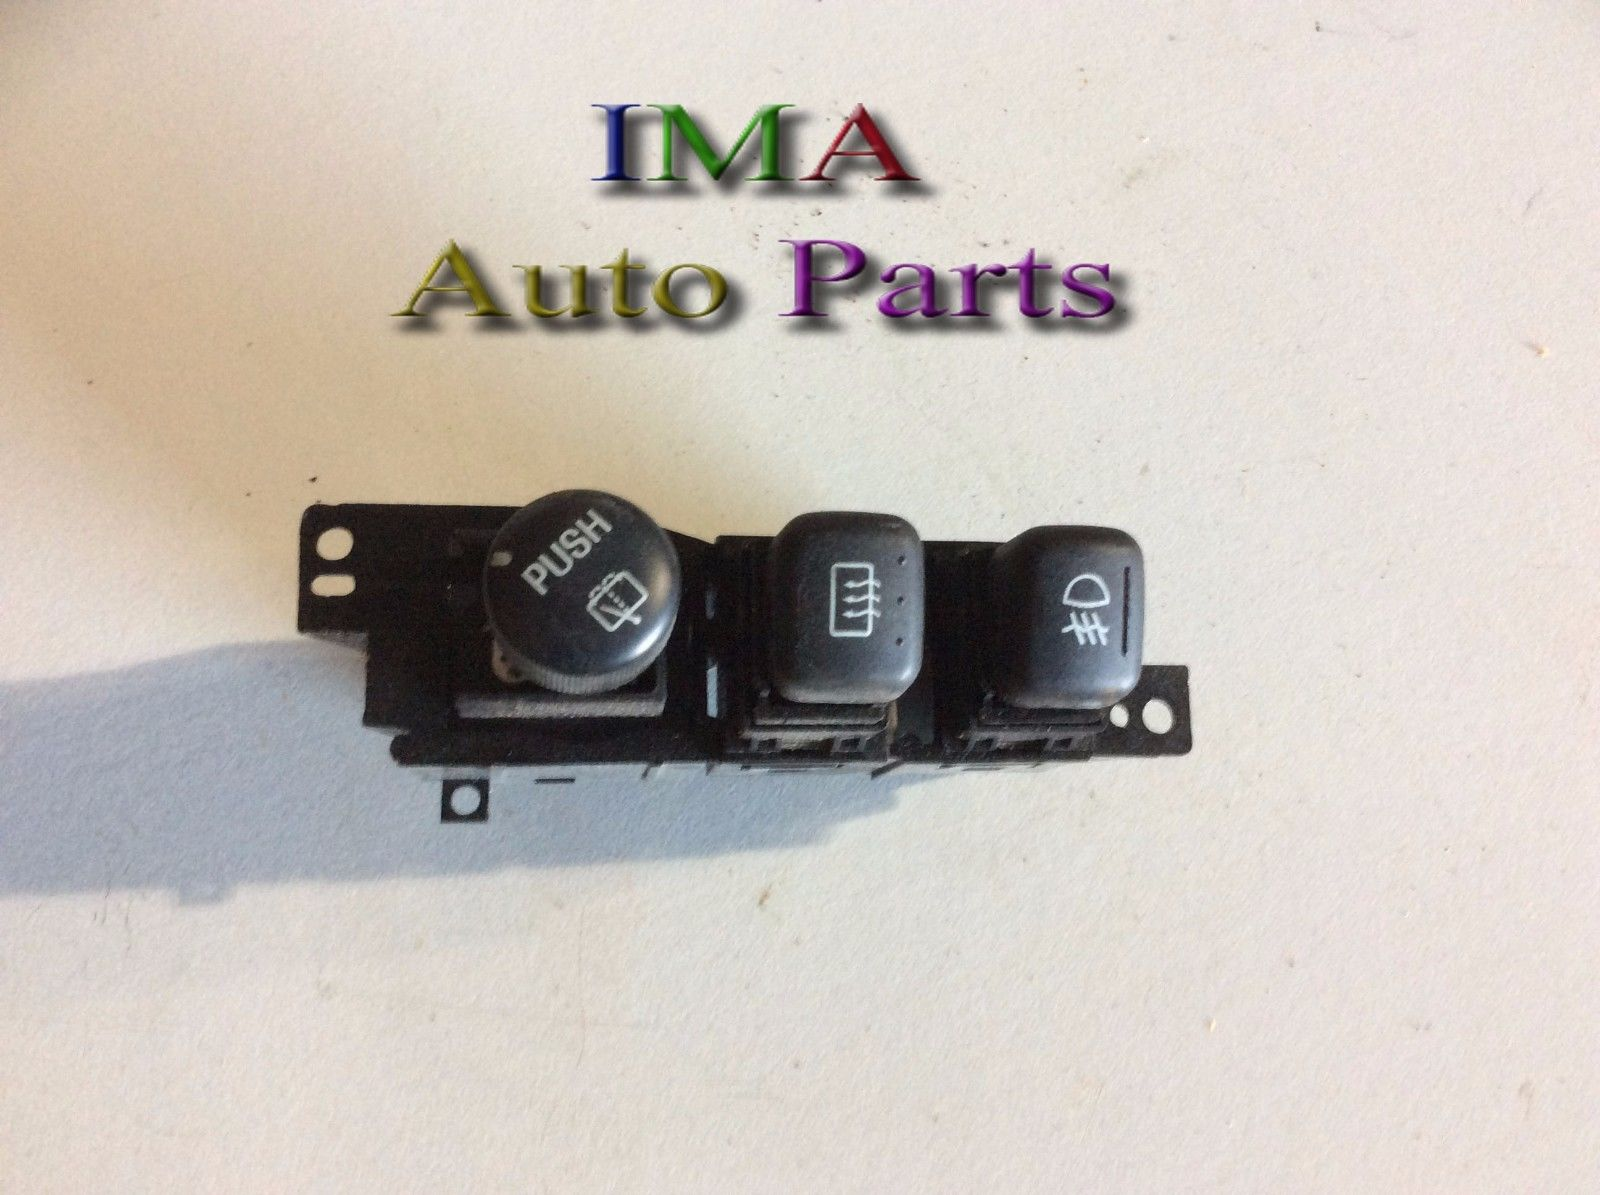 2001 <em>MERCURY</em> MOUNTAINEER FOG LIGHT REAR DEFROST WIPER CONTROL SWITCH OEM